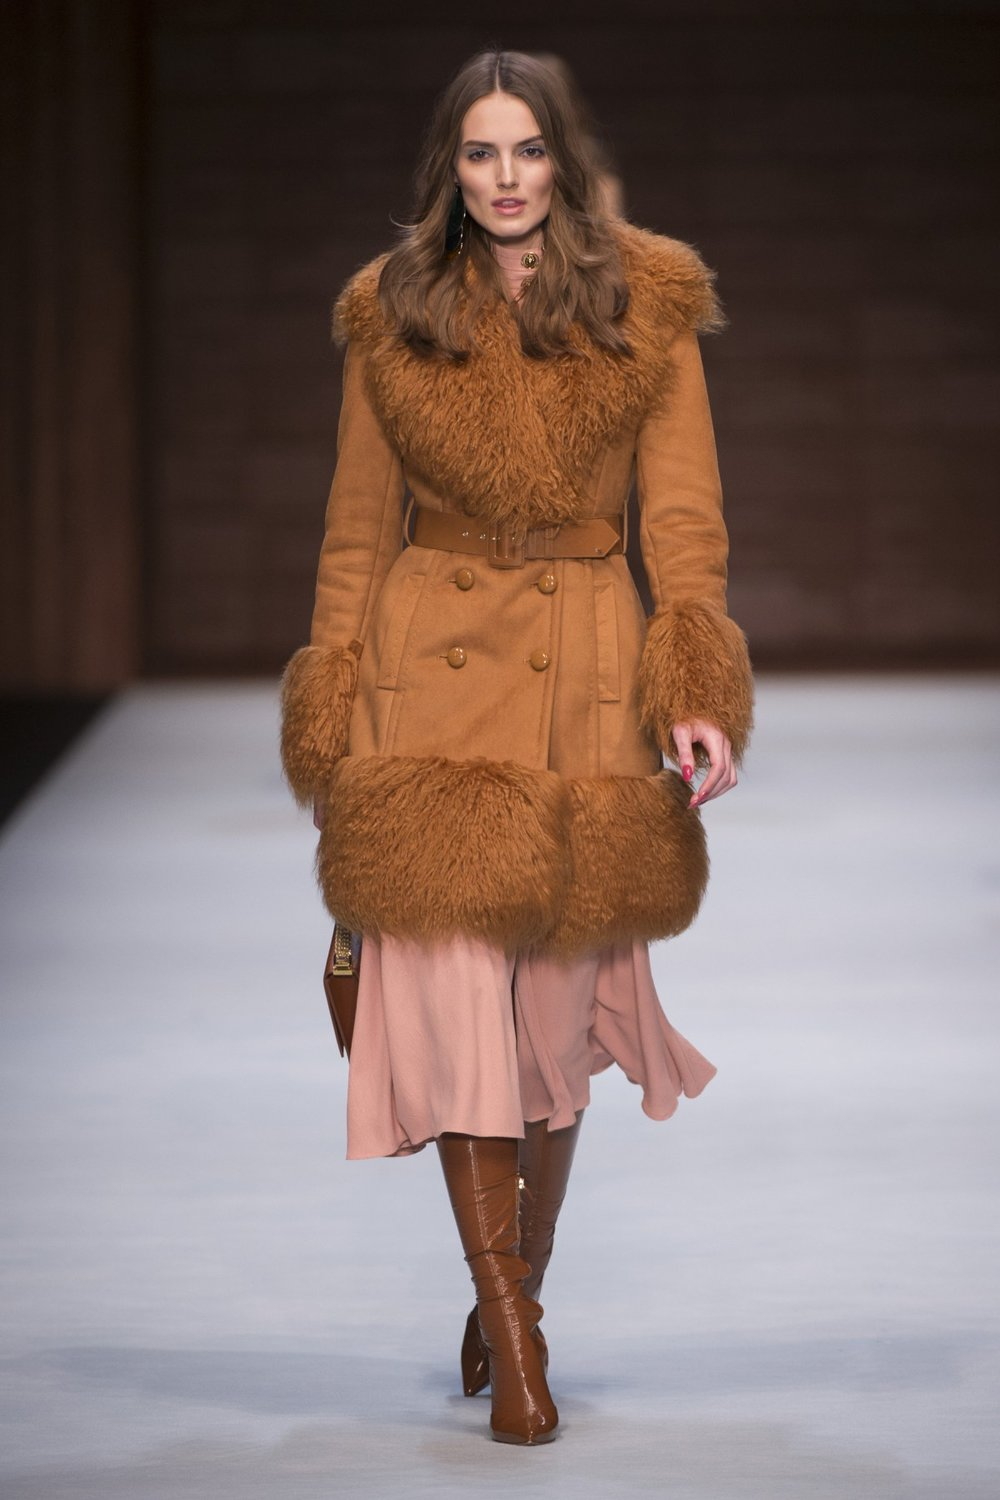 The Elisabetta Franchi Fall 2018 runway collection was inspired by actress Monica Vitti in the seventies. A flurry of knit turtlenecks and glossy pencil skirts, crochet, lamé and faux fur, it was the epitome of elegance with a little rock 'n roll on the side ...